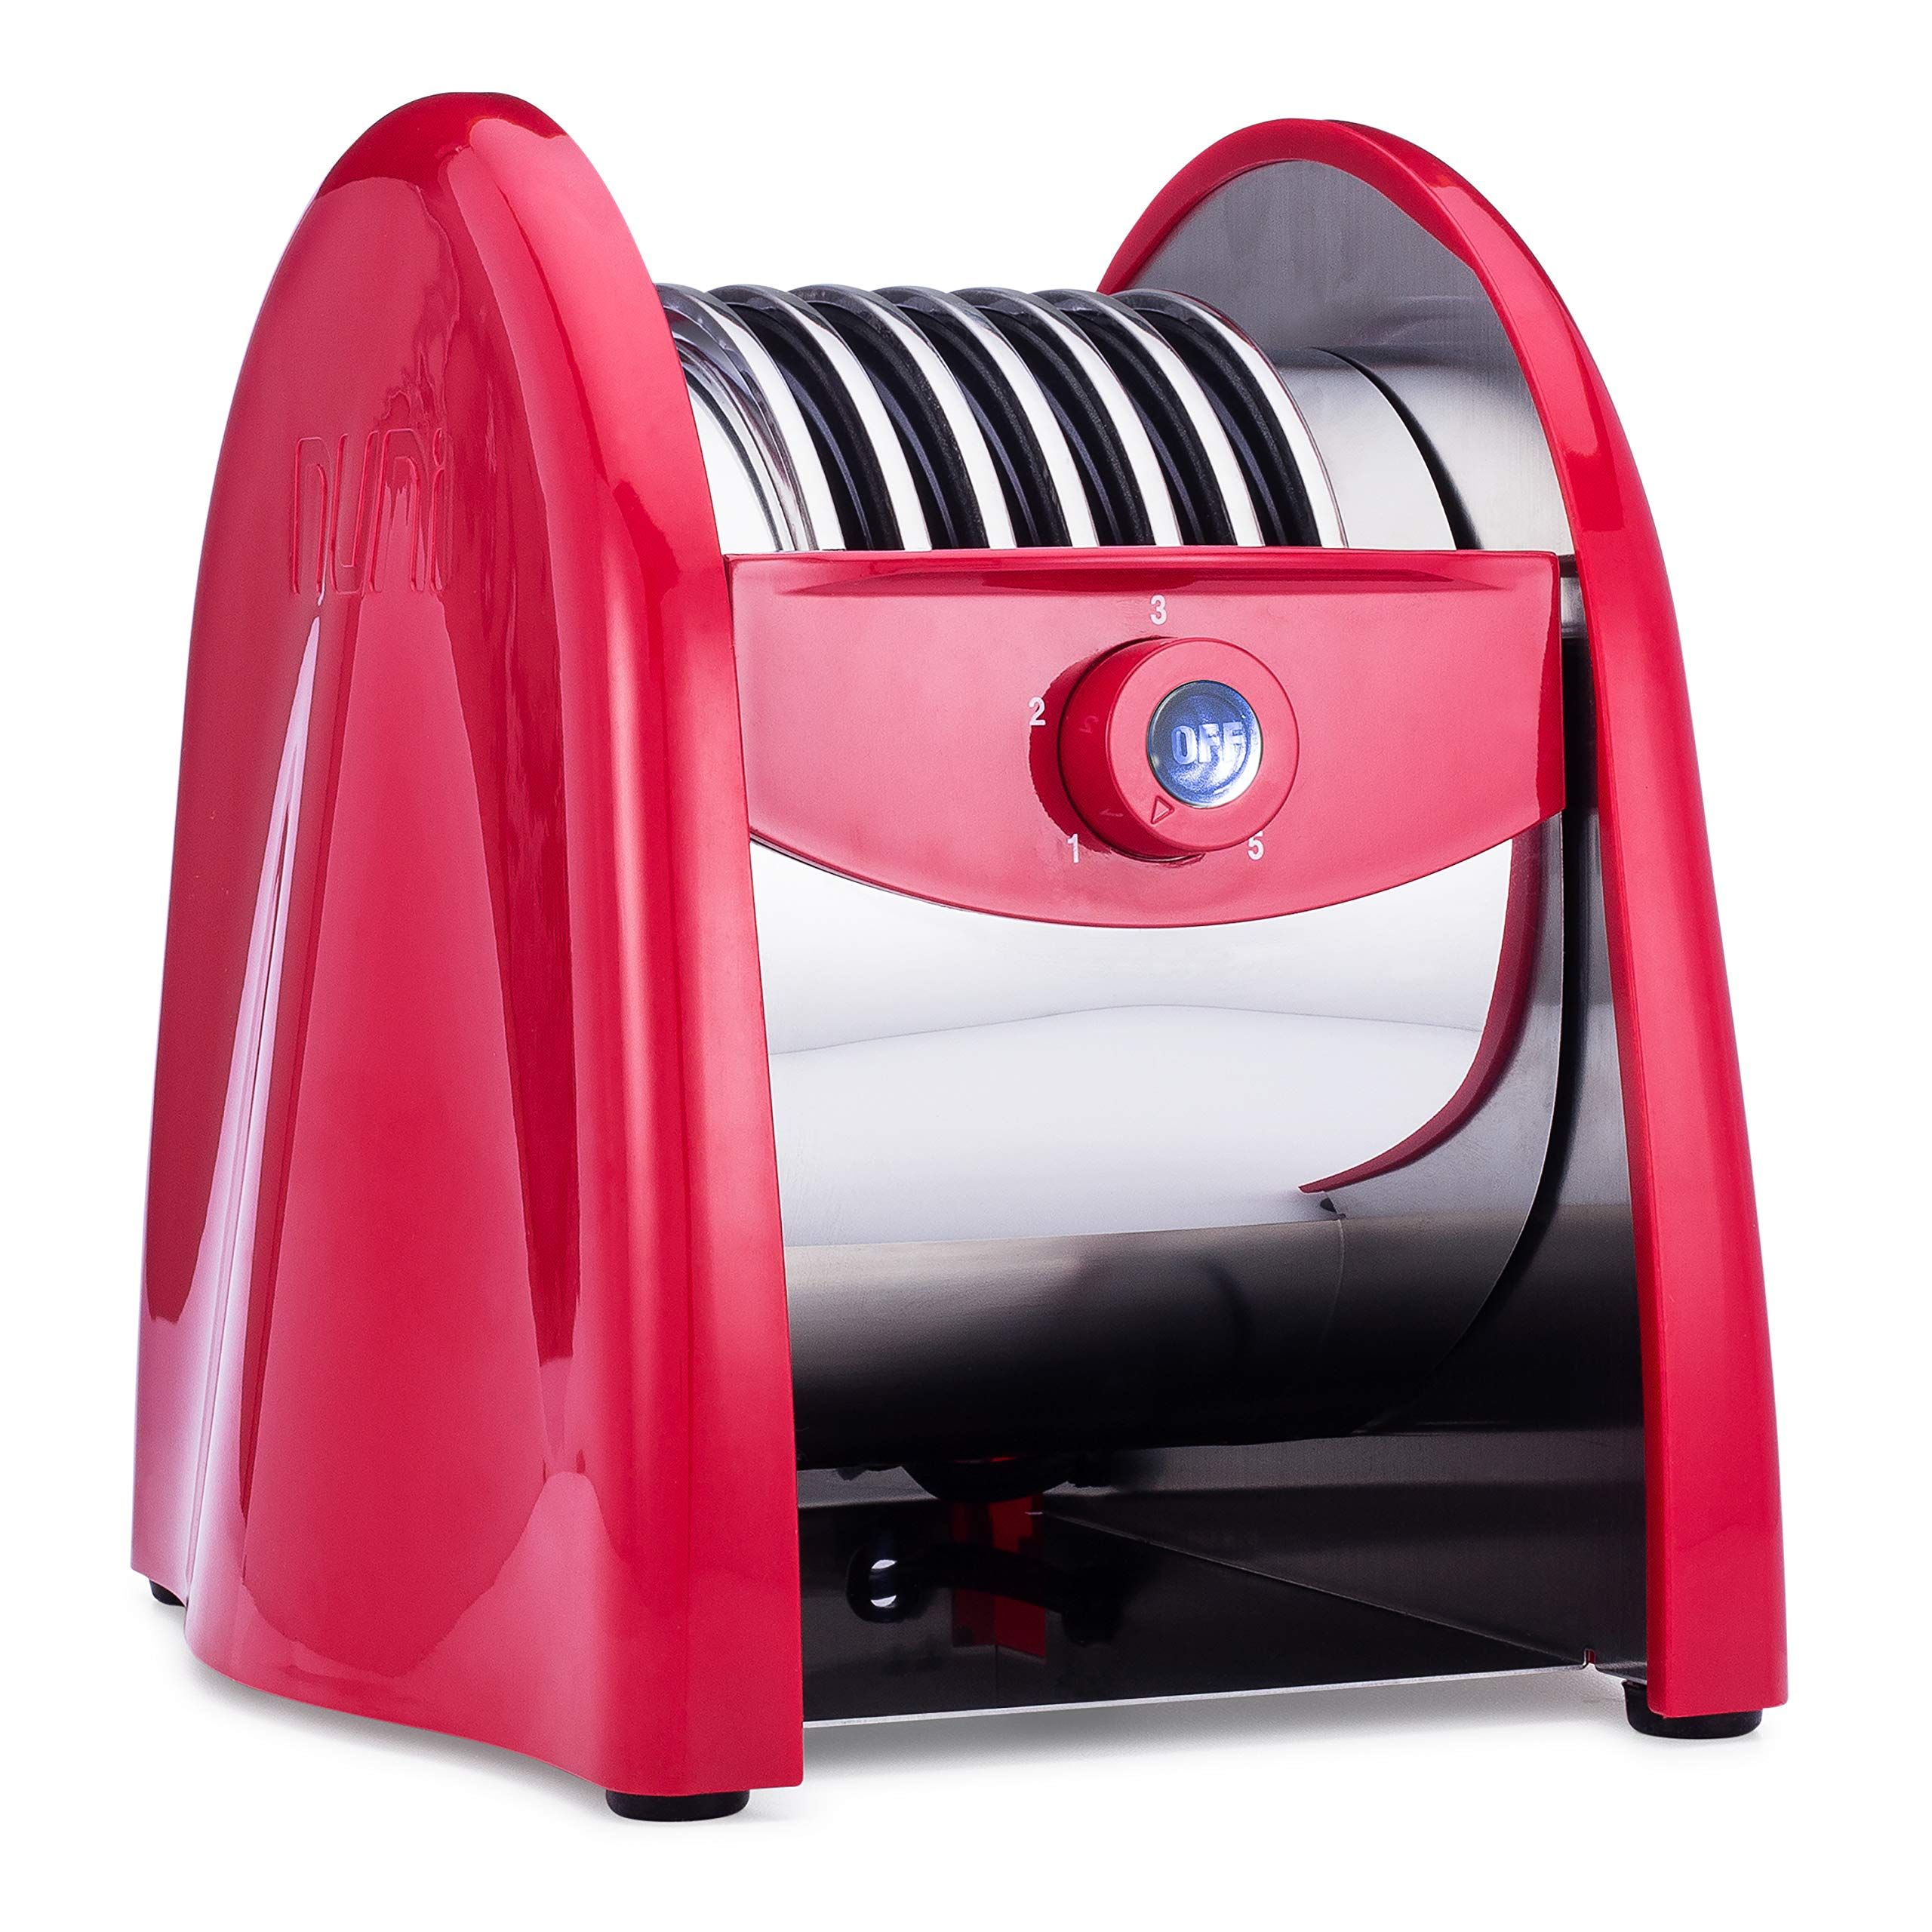 NUNI - World's First Tortilla Toaster (Red). 6 Hot Tortillas in Less Than One Minute. Easier Than Warming Tortillas On The Stove. Better Than Warming Tortillas In The Microwave. Made For 6-Inch Corn, Flour, & Wheat Tortillas.